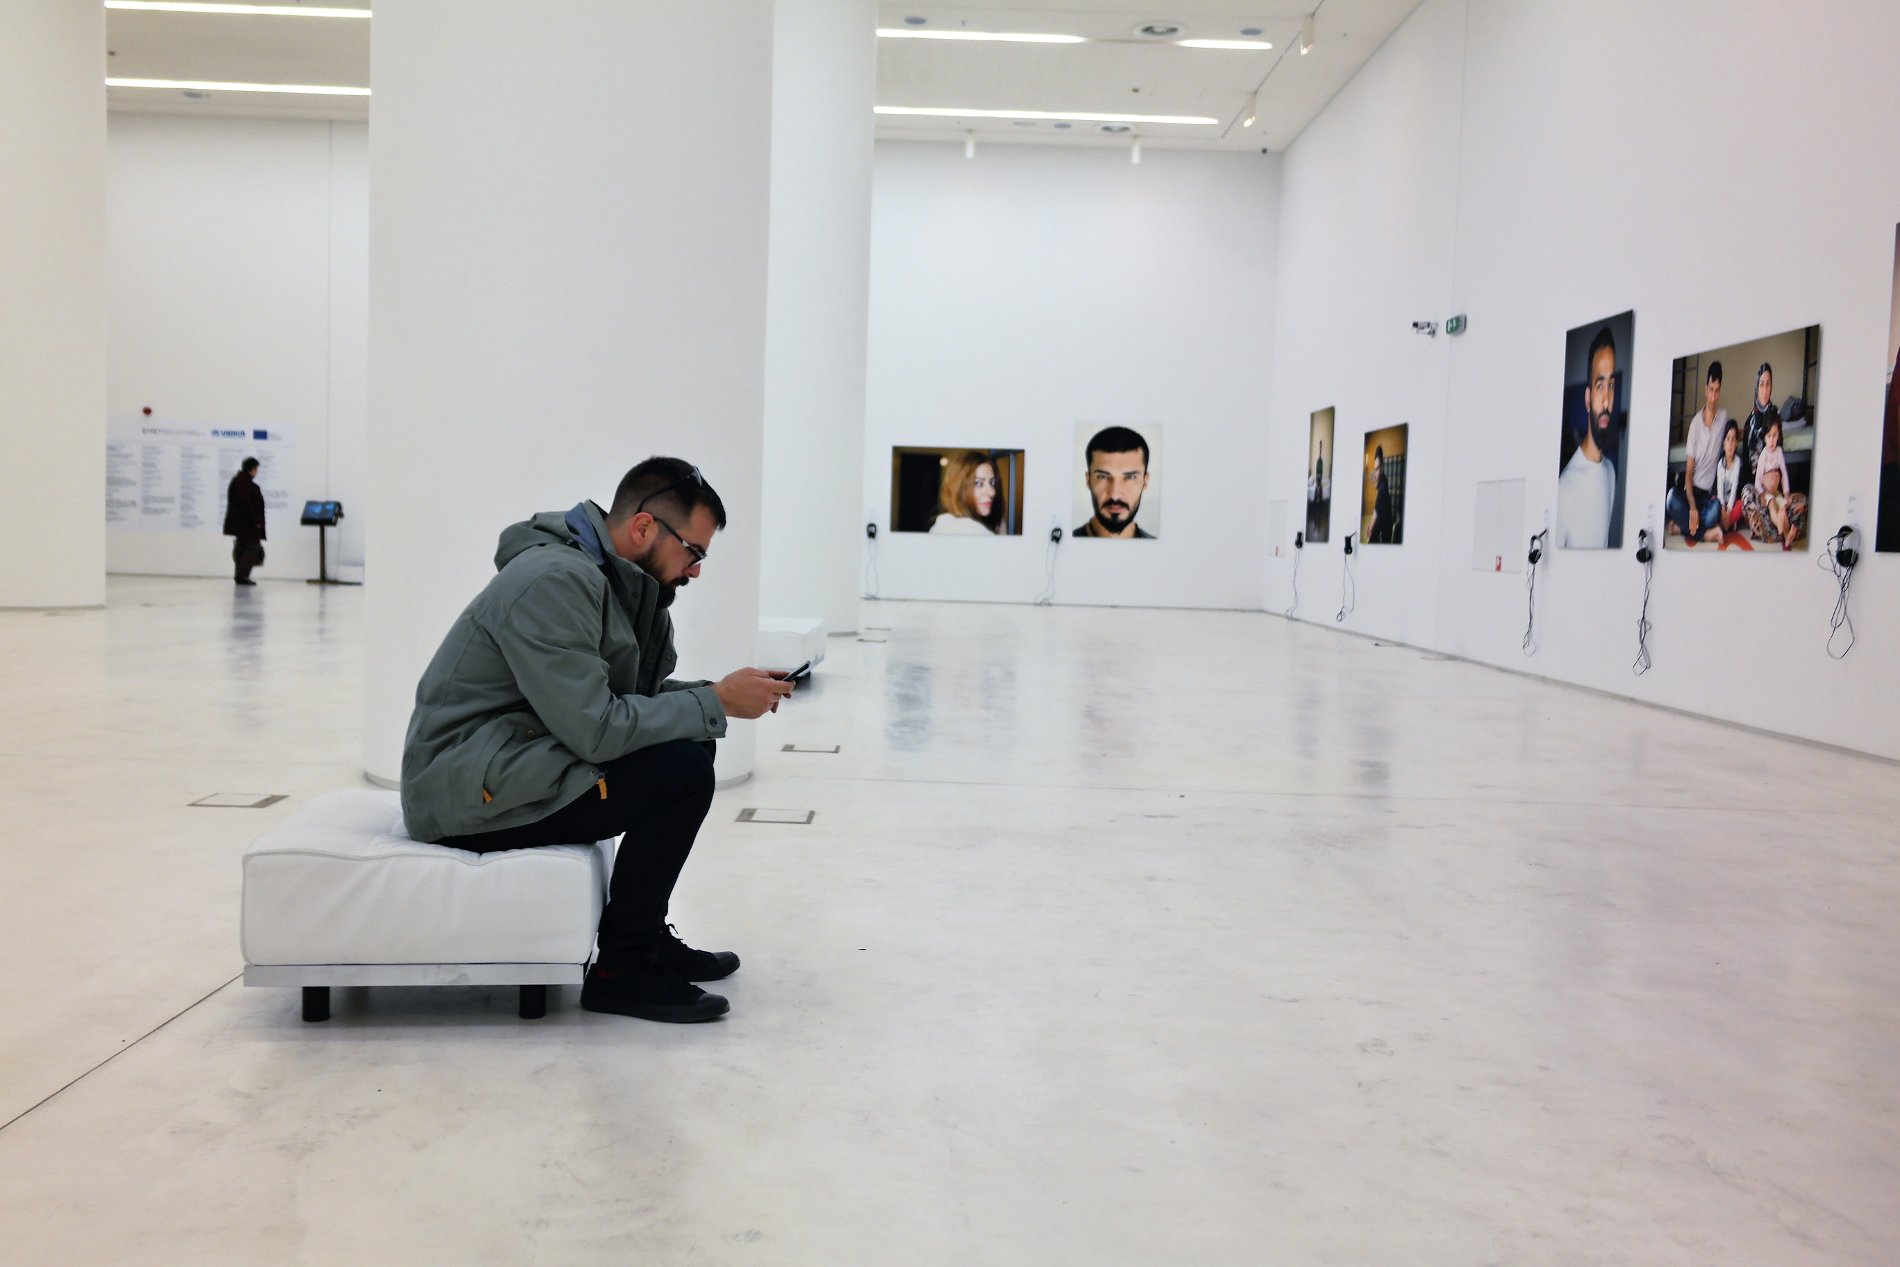 All refugee portraits are presented in a clean wide space at the ground floor of the National Museum of Contemporary Art in Athens.